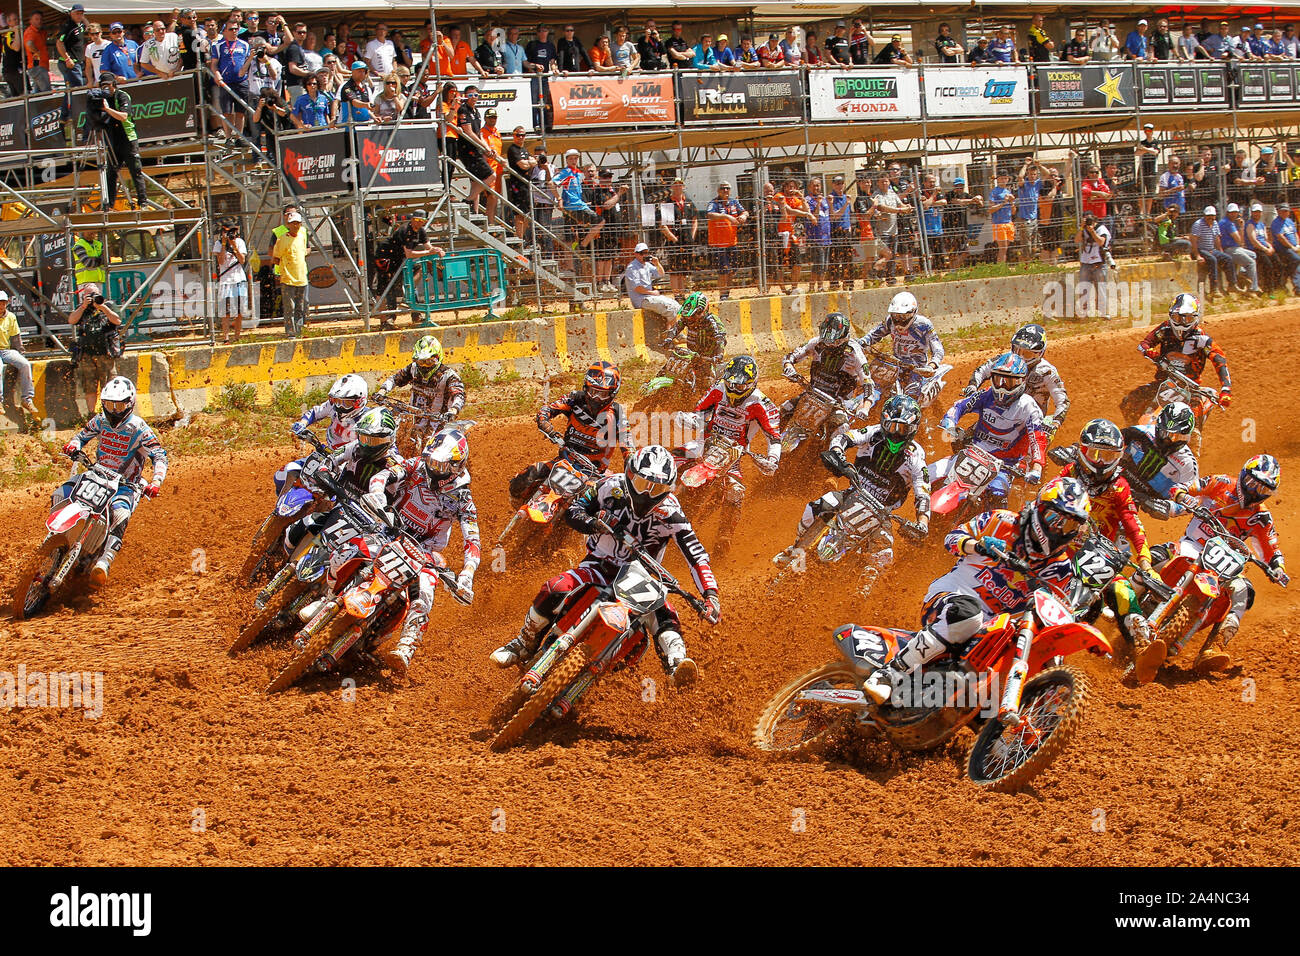 MX2 rider's, JEFFREY HERLINGS (NED) of Red Bull KTM Factory Racing, MX2 during GP of Portugal 2013 in MX1 and MX2, Casarão International Crossodromo, Stock Photo